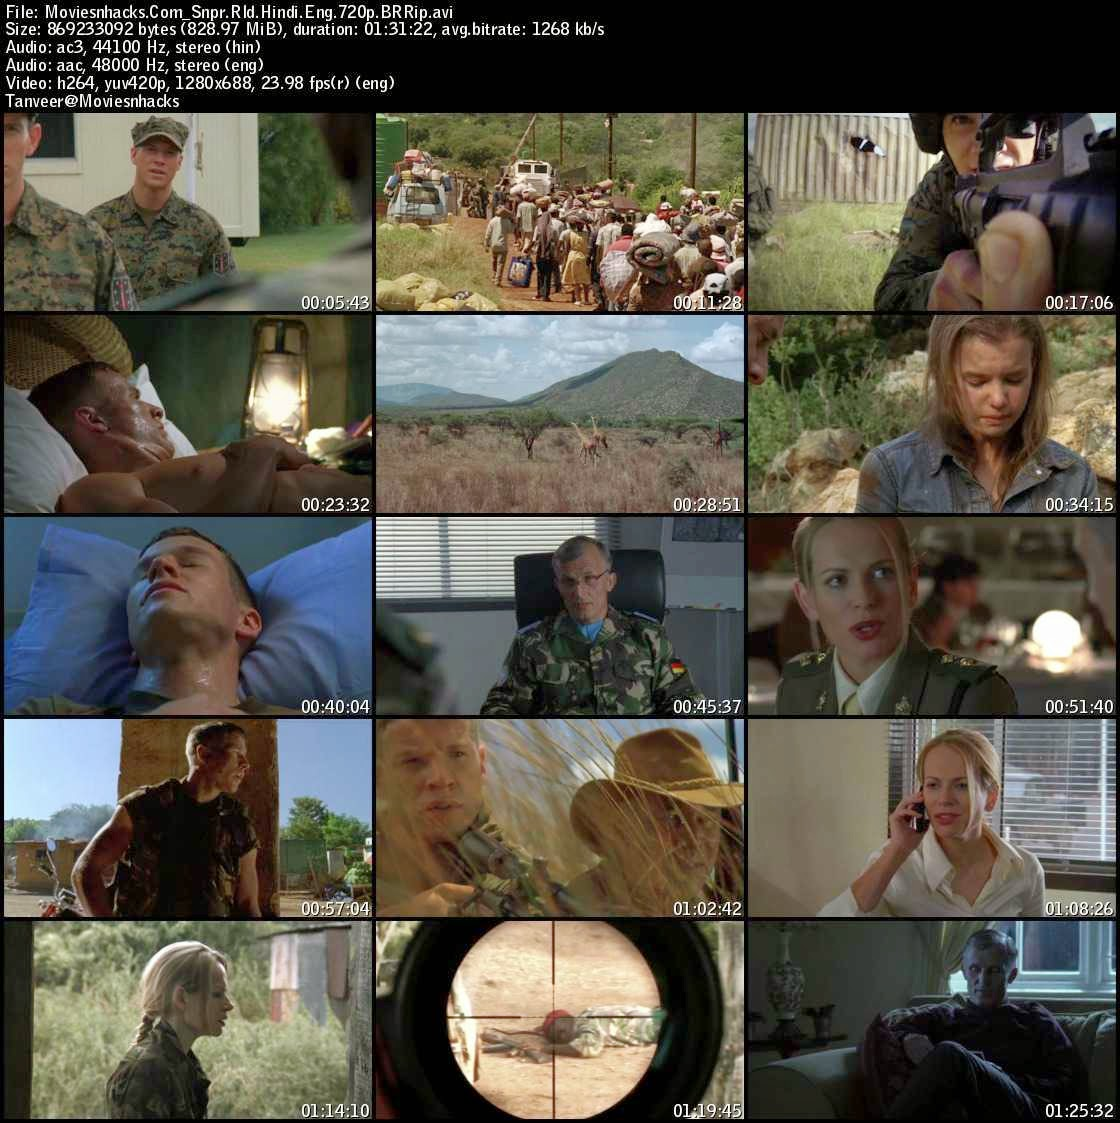 Sniper: Reloaded (2011) 720p BRRIp x264 Dual Audio